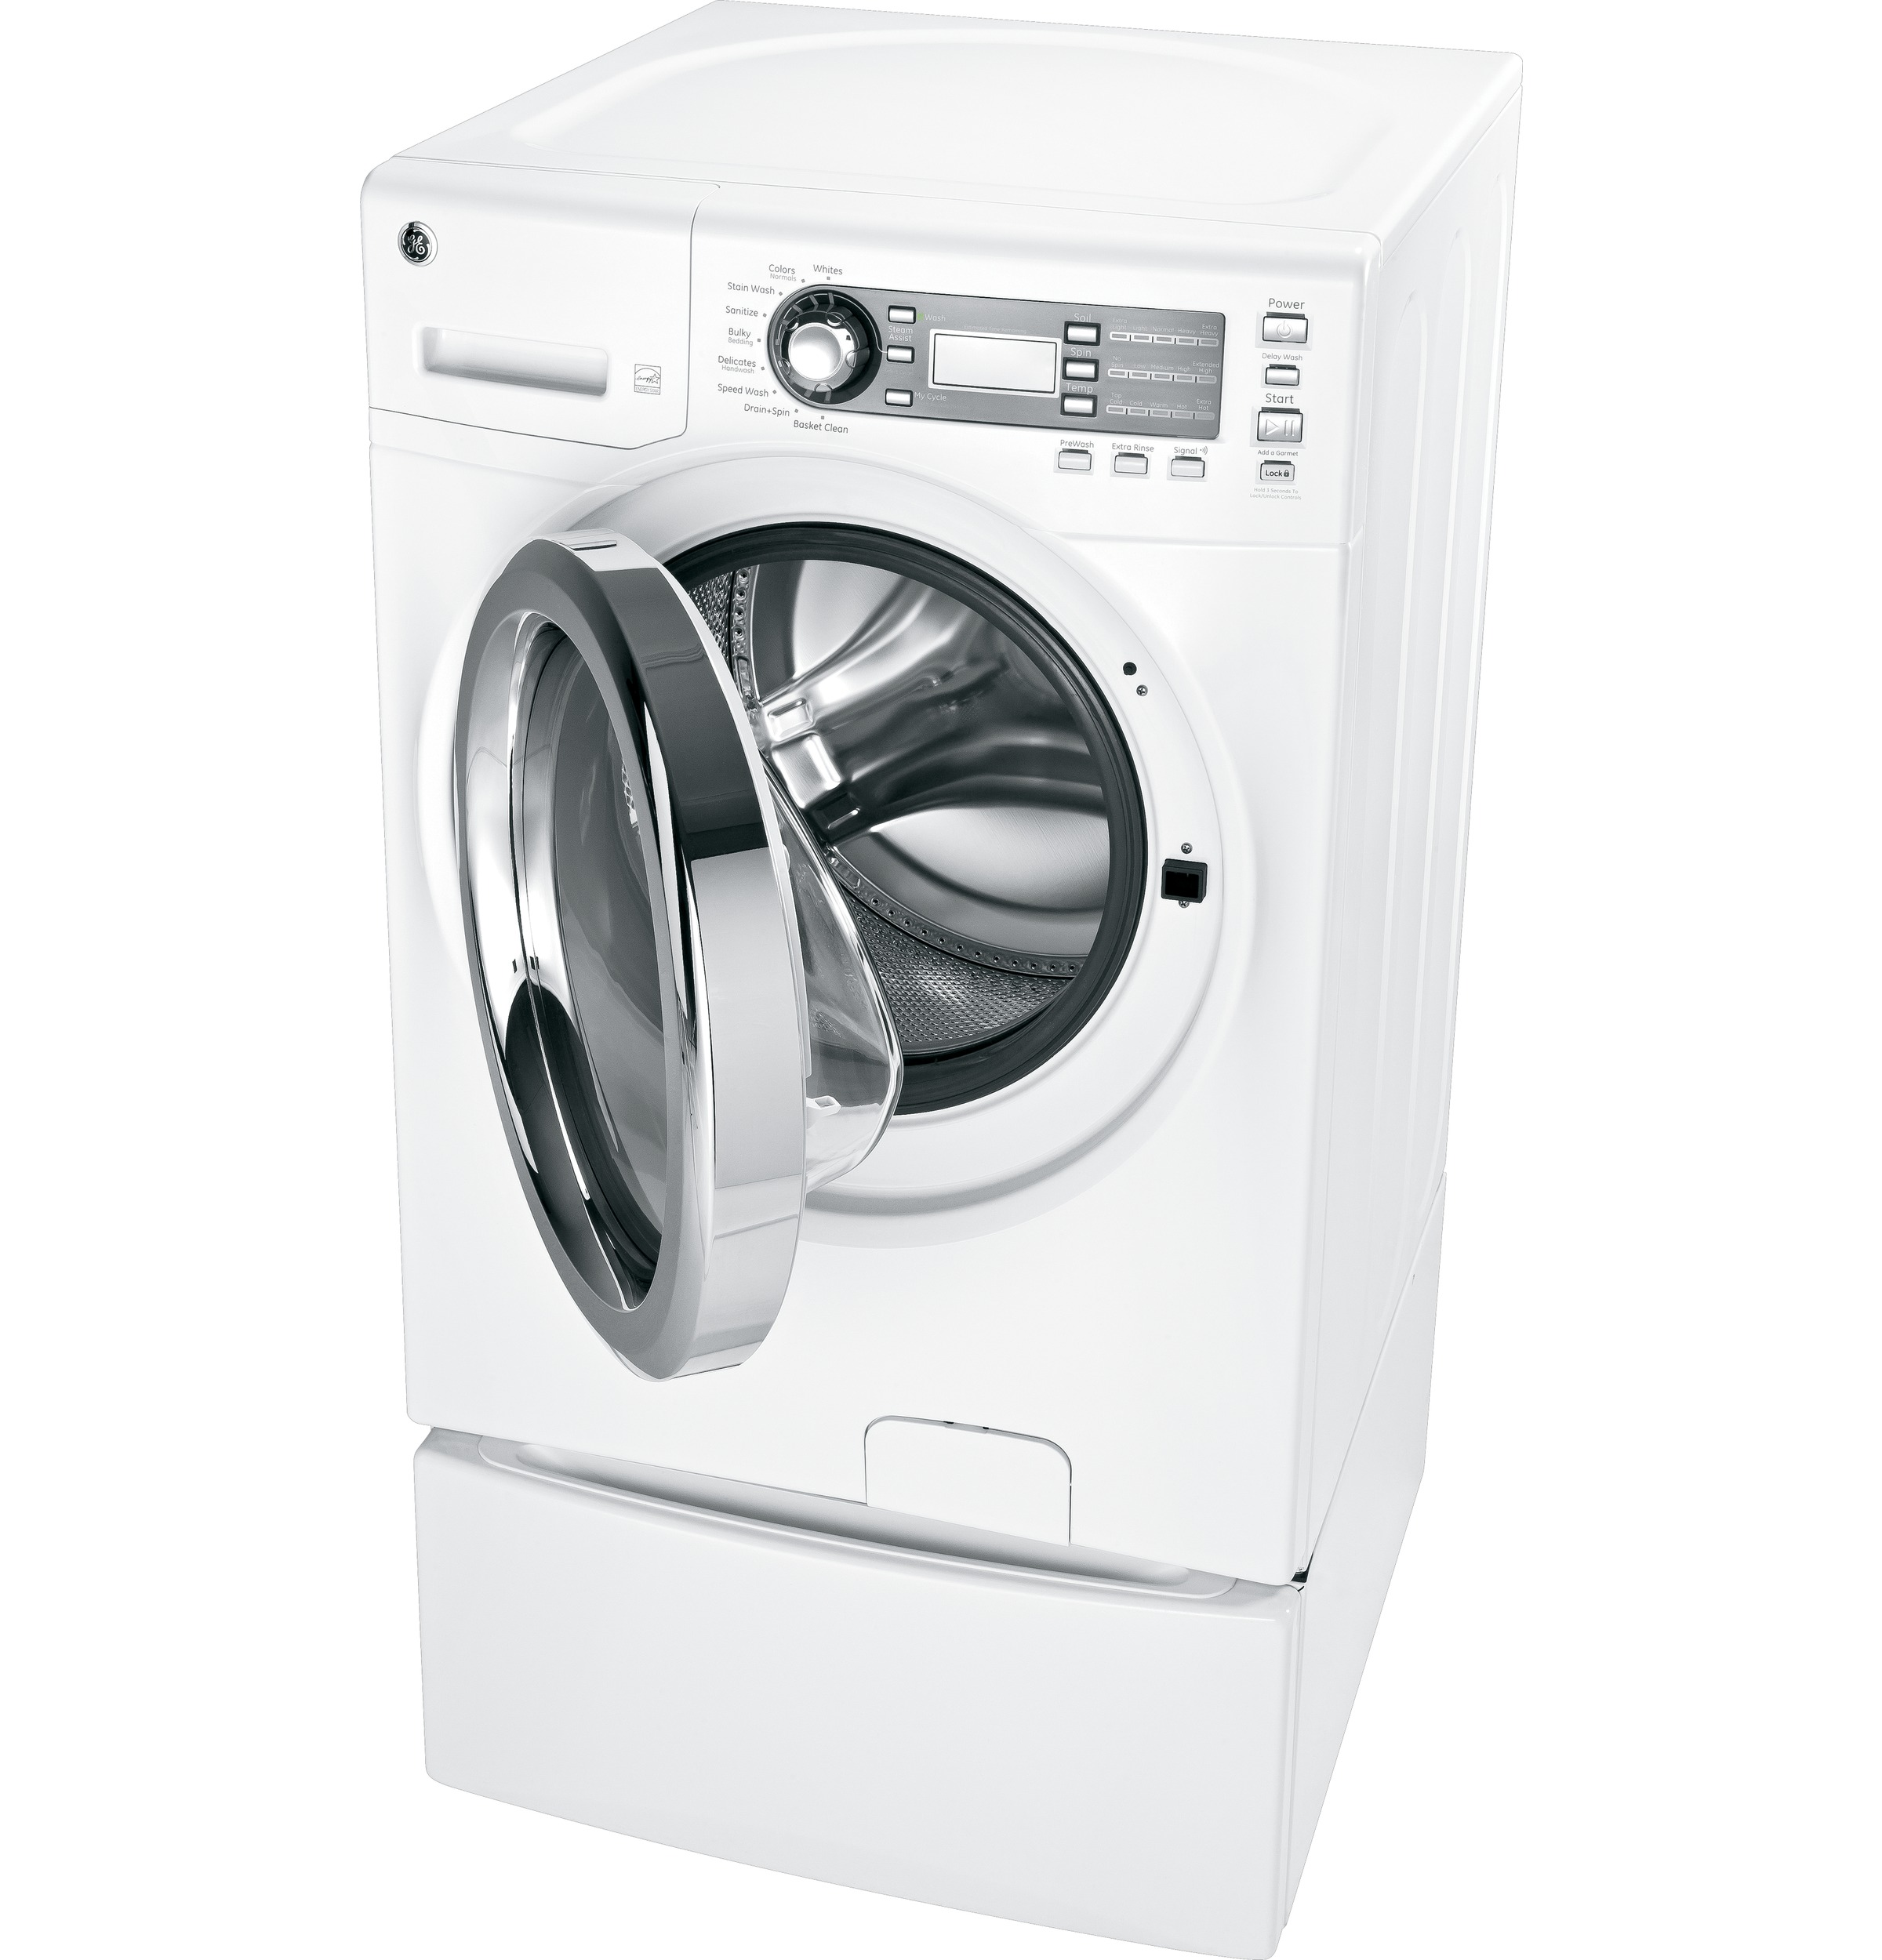 GE Appliances 4.1 cu. ft. Steam Front-Load Washer - White